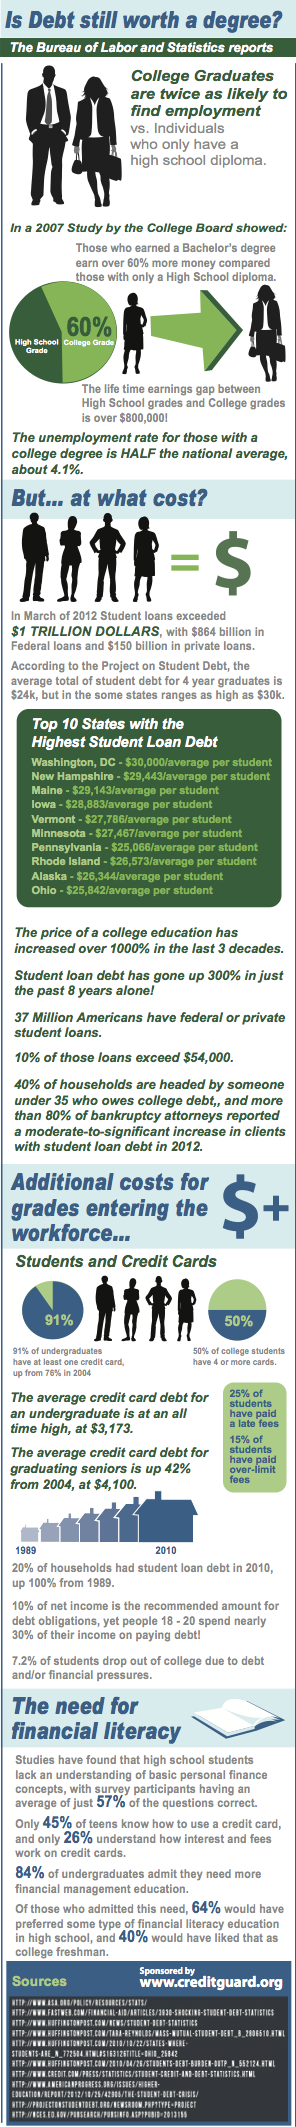 2013 student loan debt infographic